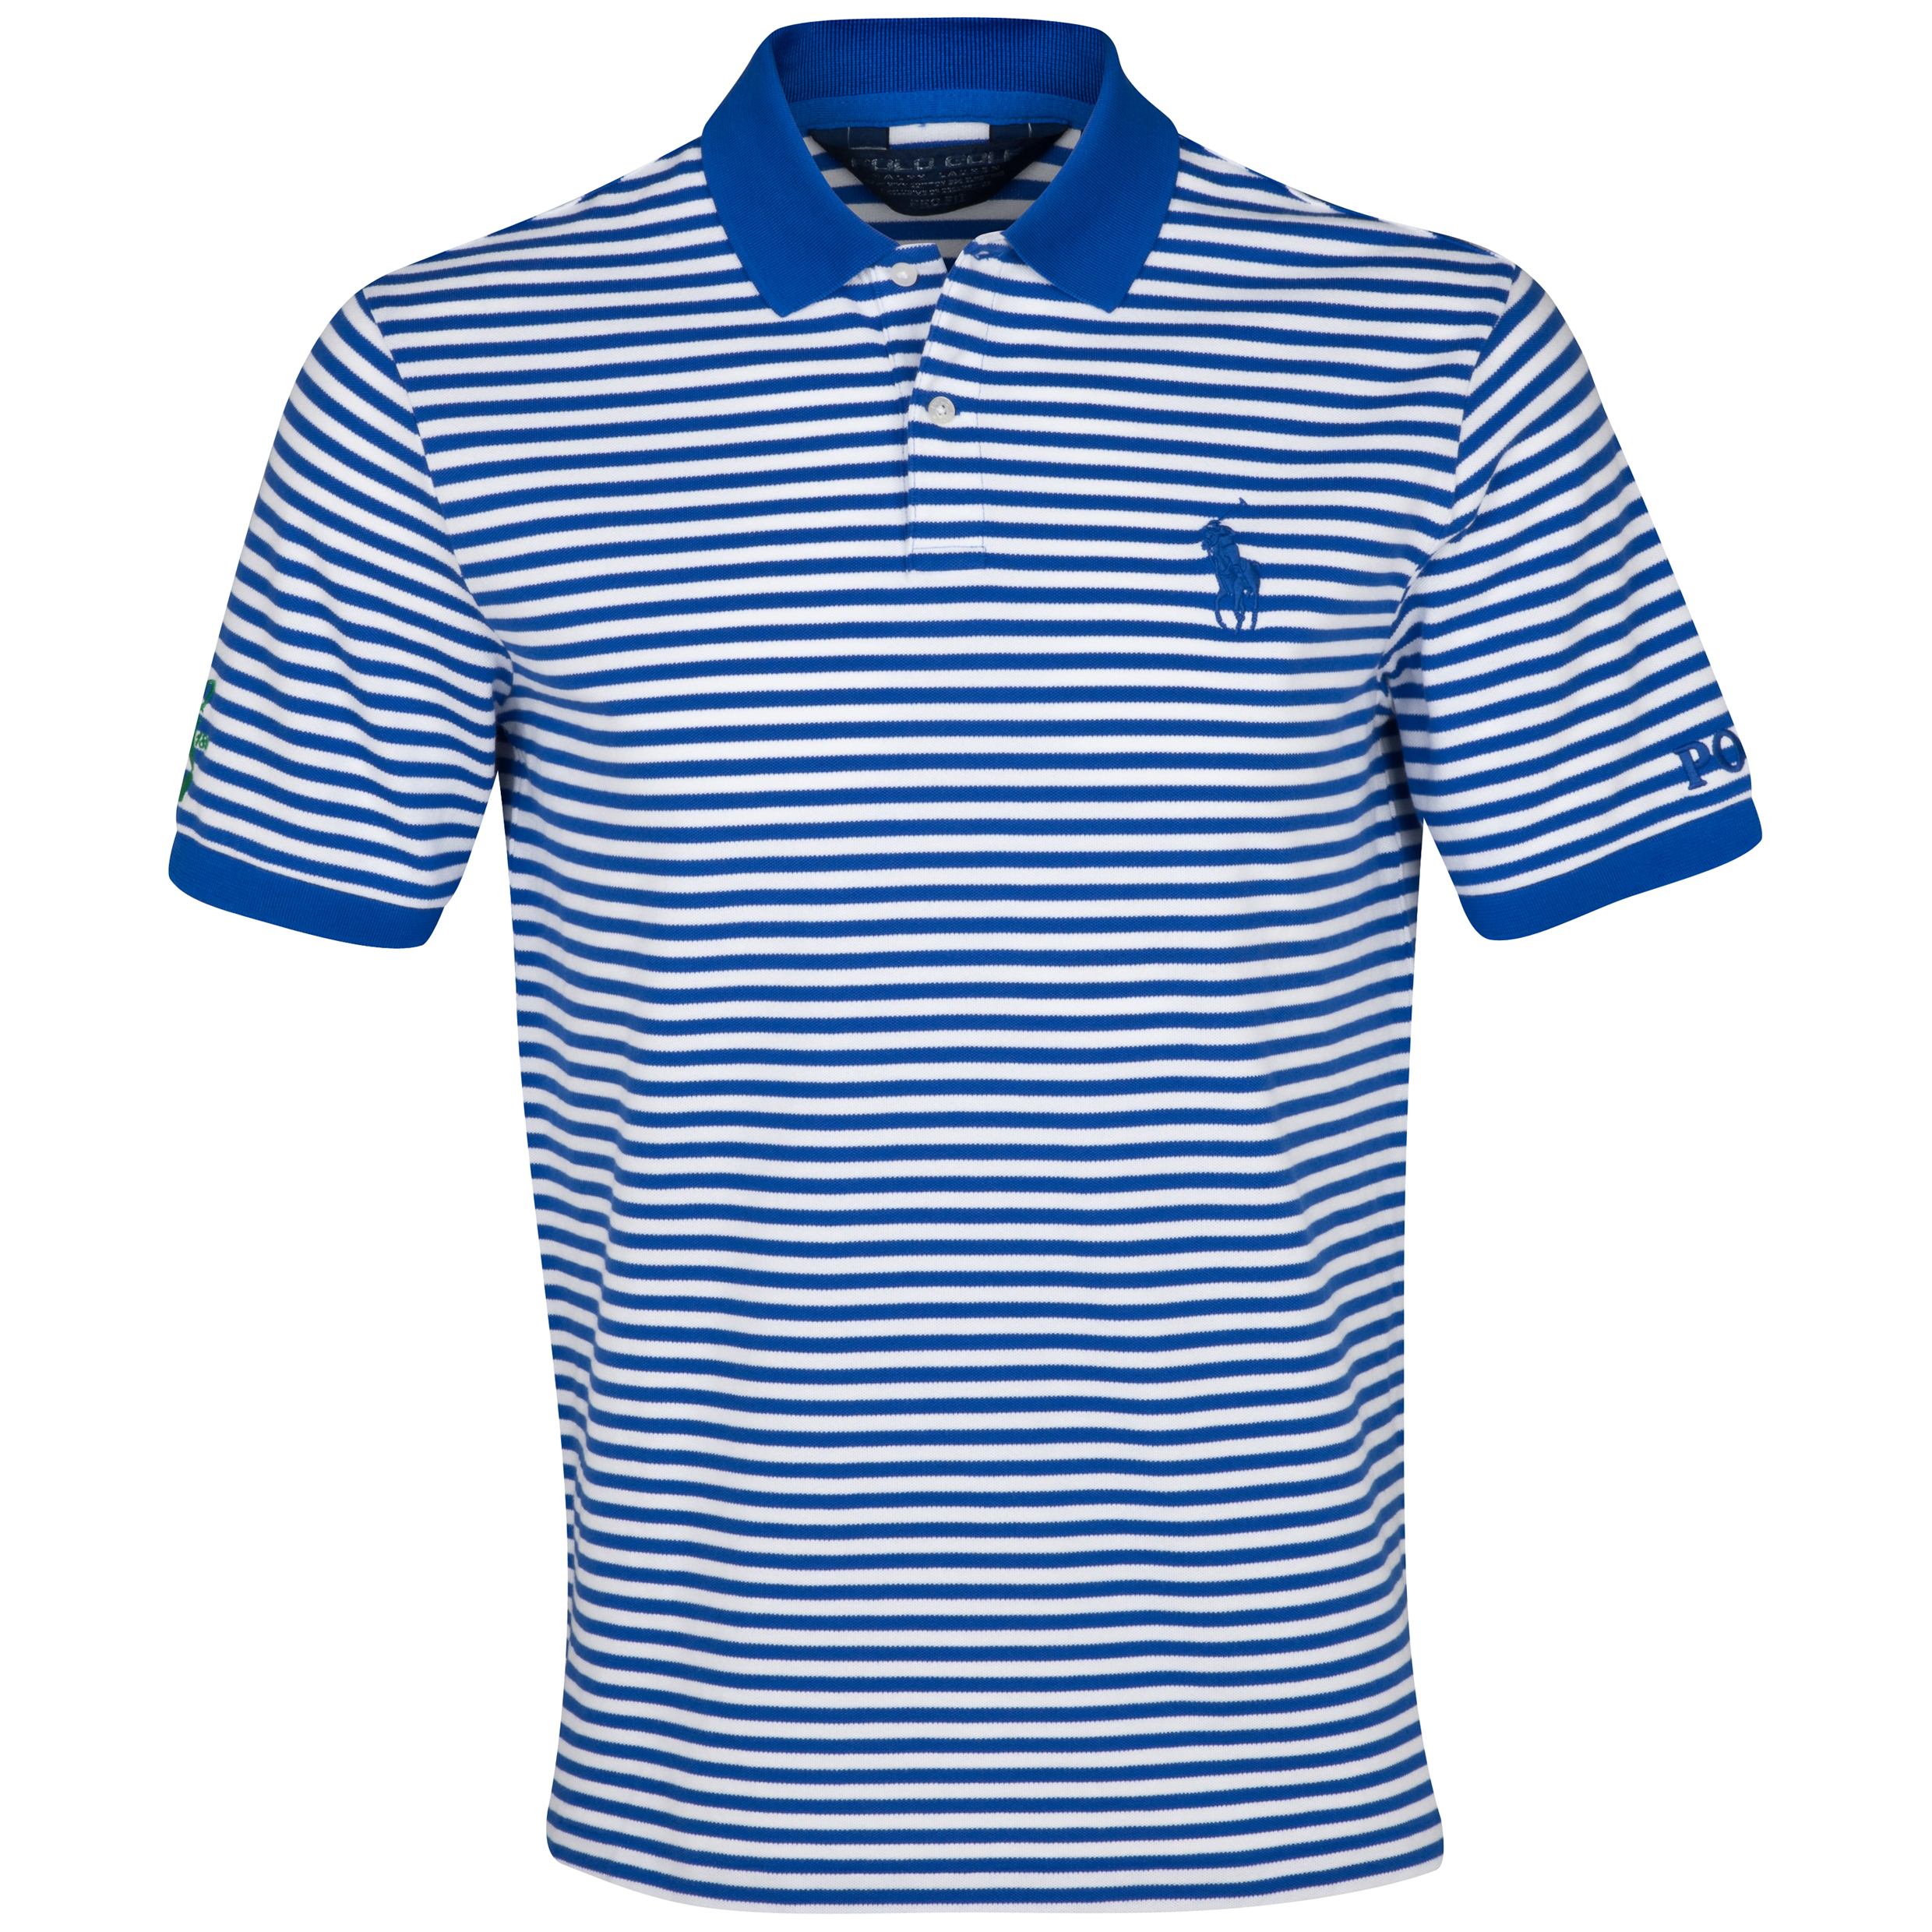 The Open Championship Ralph Lauren Big Pony Stripe Polo Blue